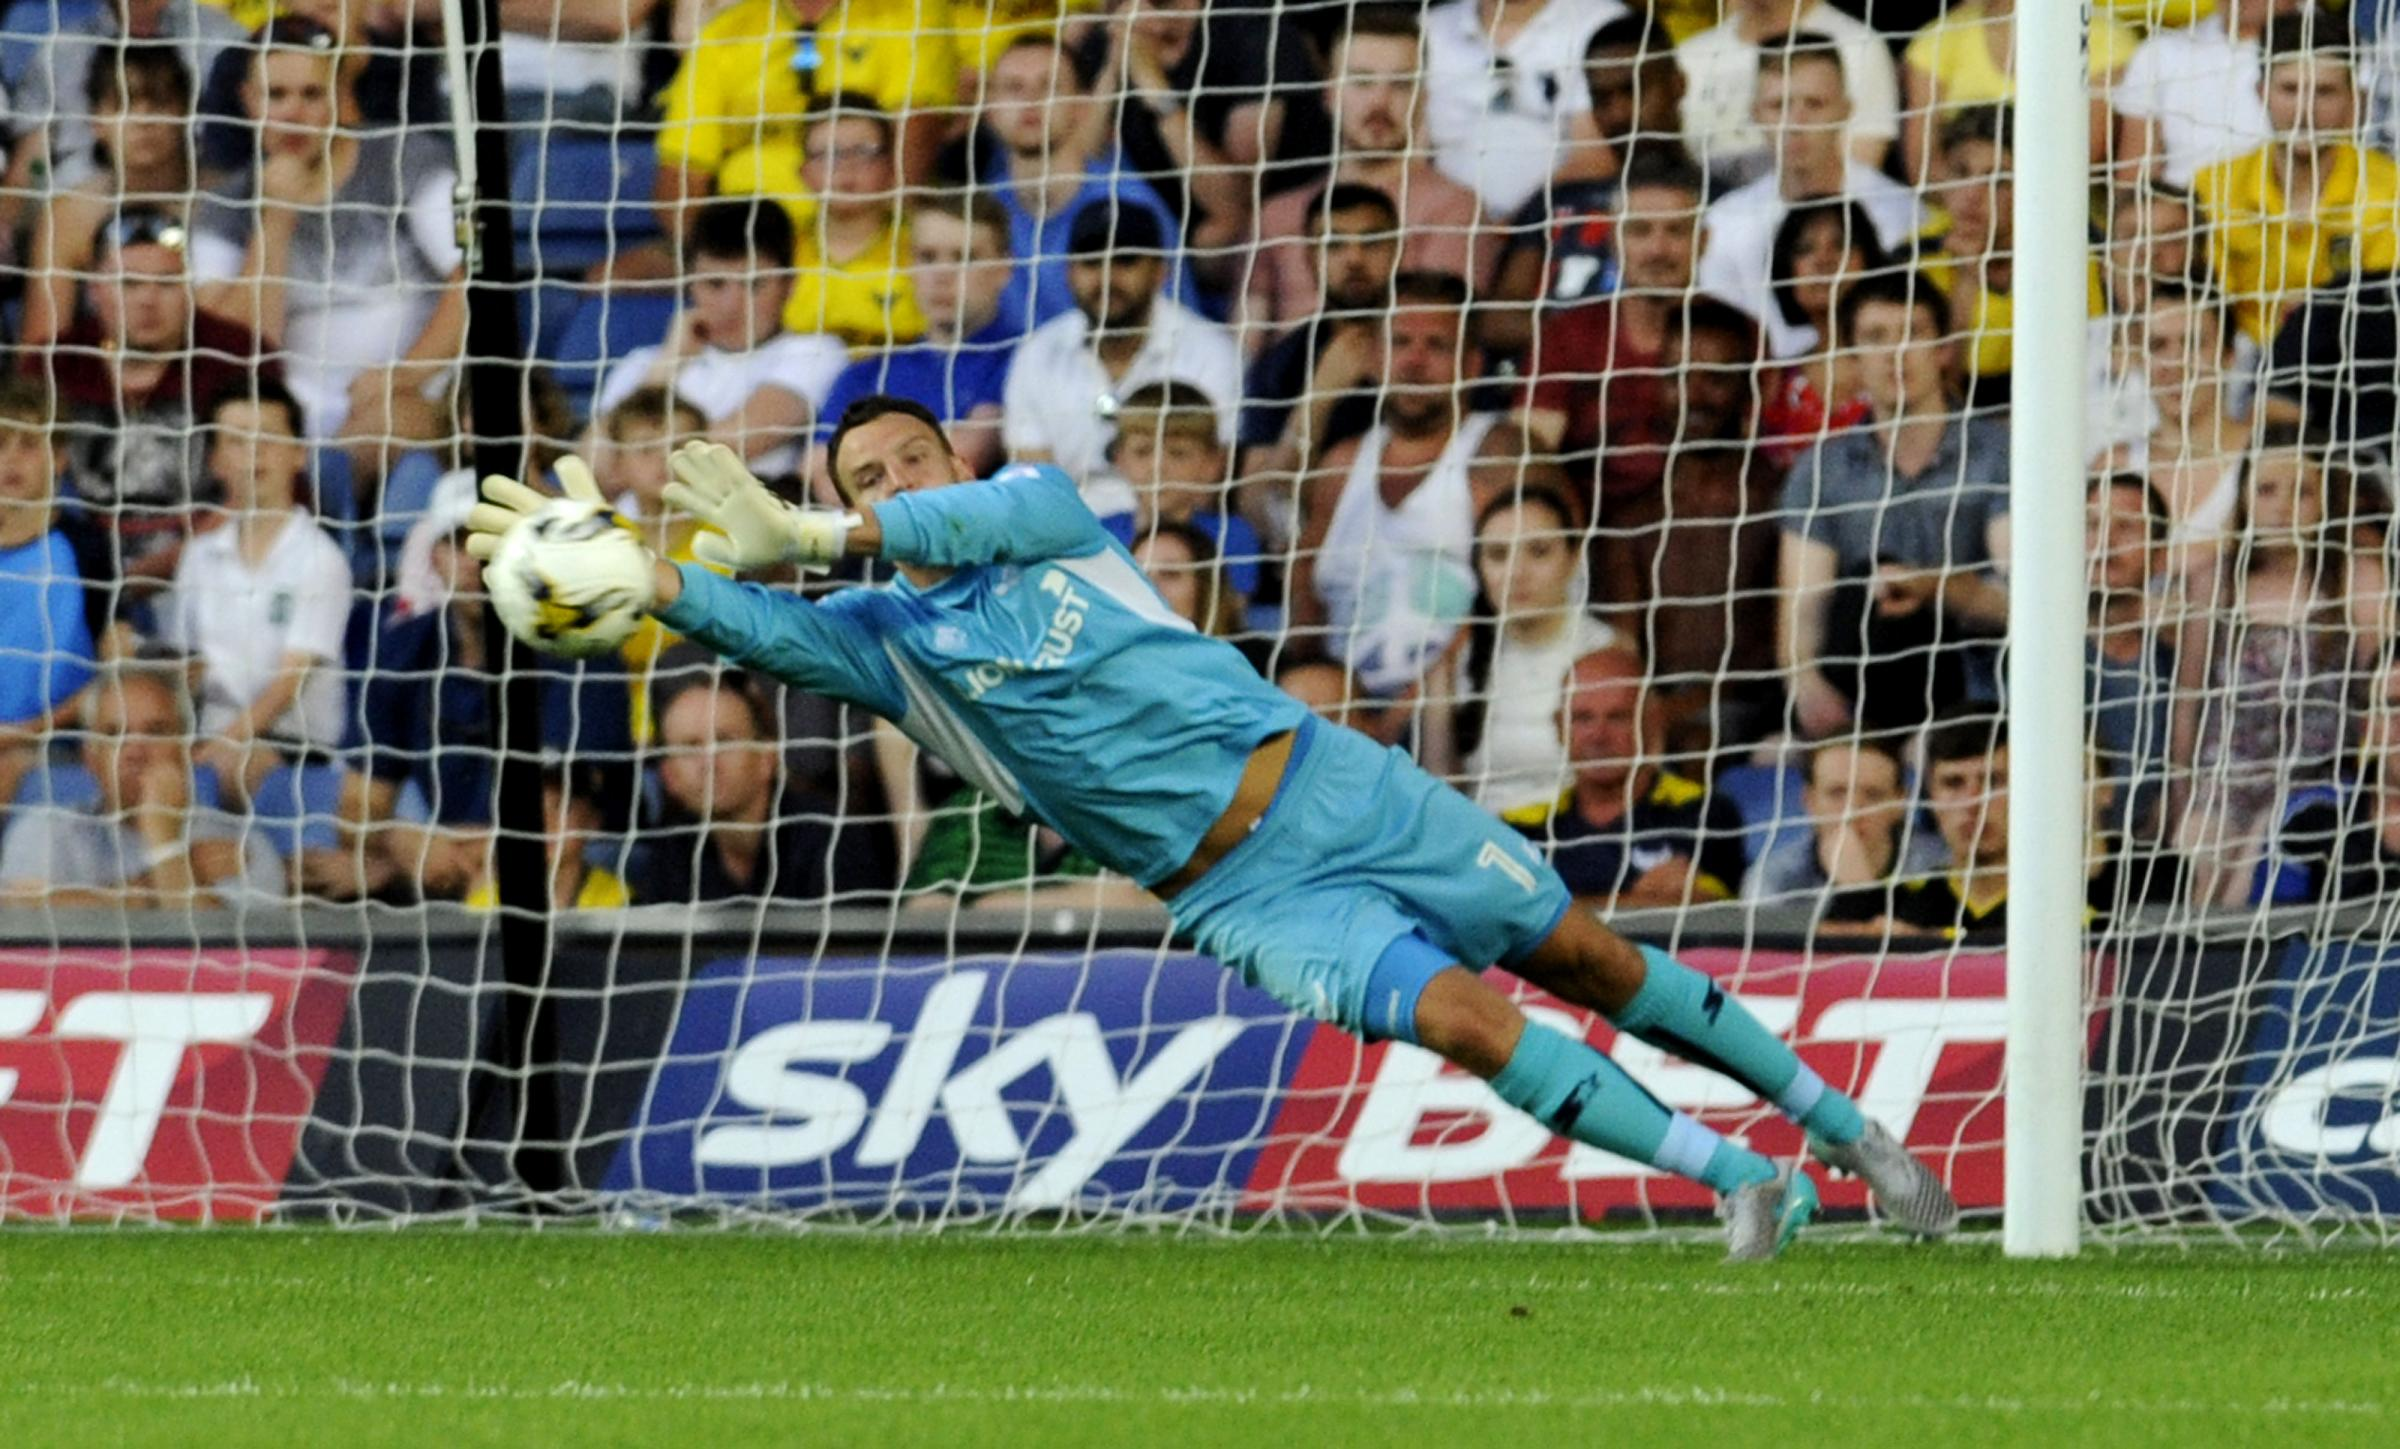 Simon Eastwood makes a spectacular save to deny Leicester's Ahmed Musa